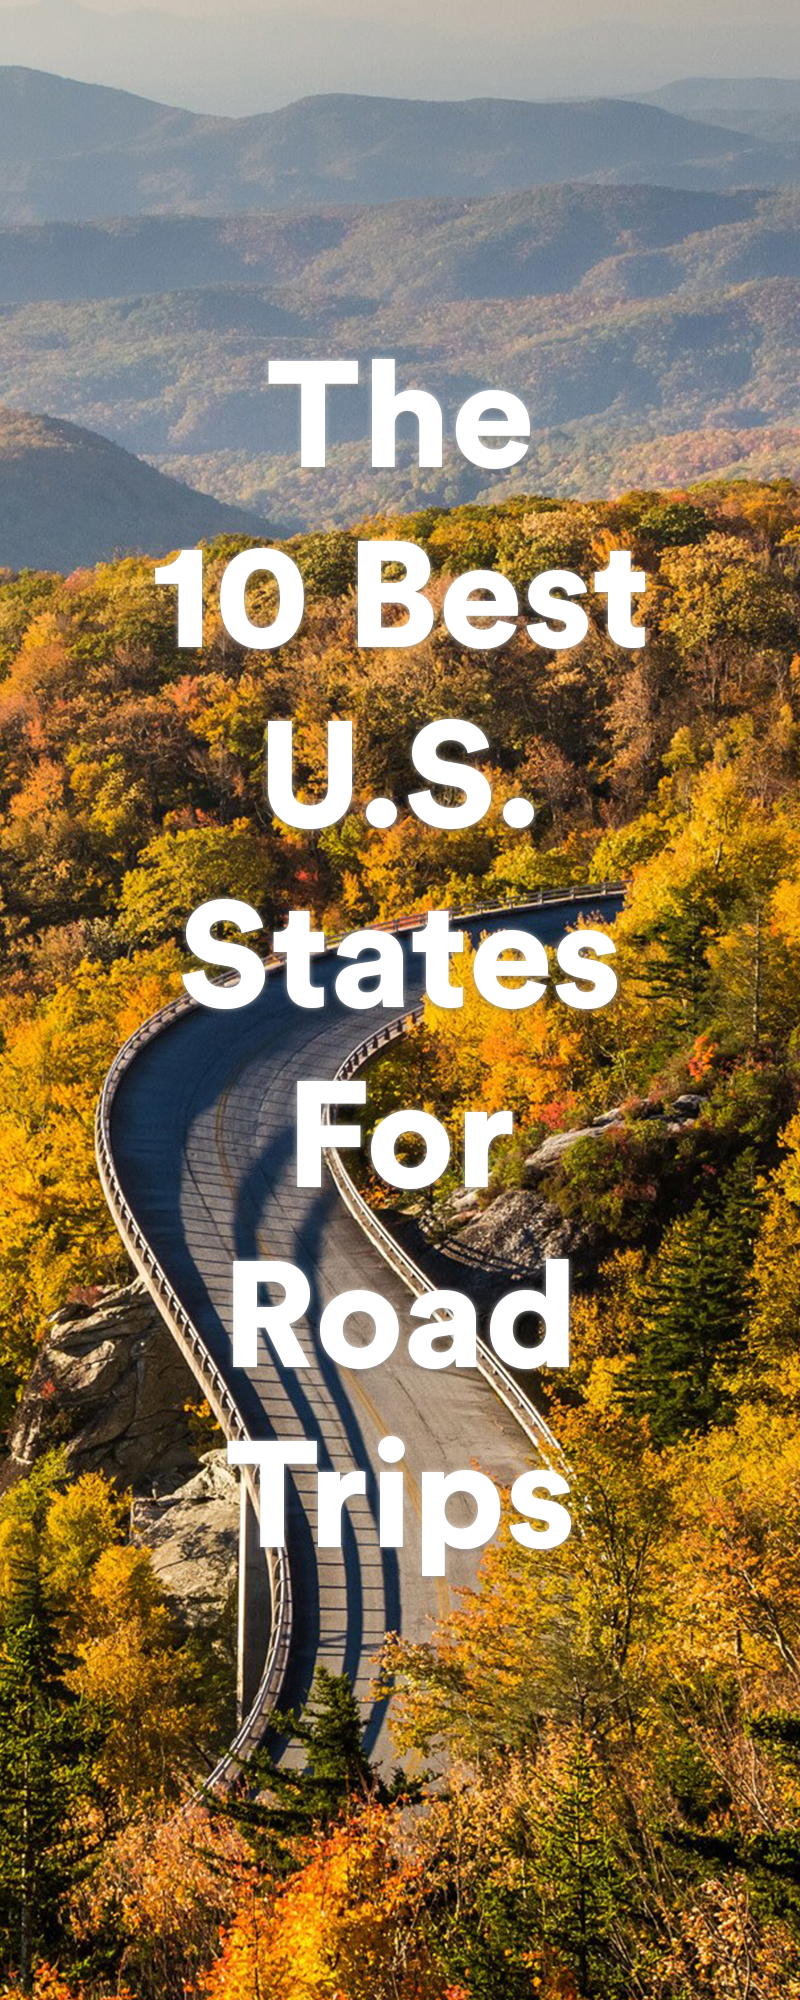 A Whopping 79 Percent Of Americans Are Planning To Hit The Highway This Summer For Road Trip According Aaa And Options Where Go Nearly